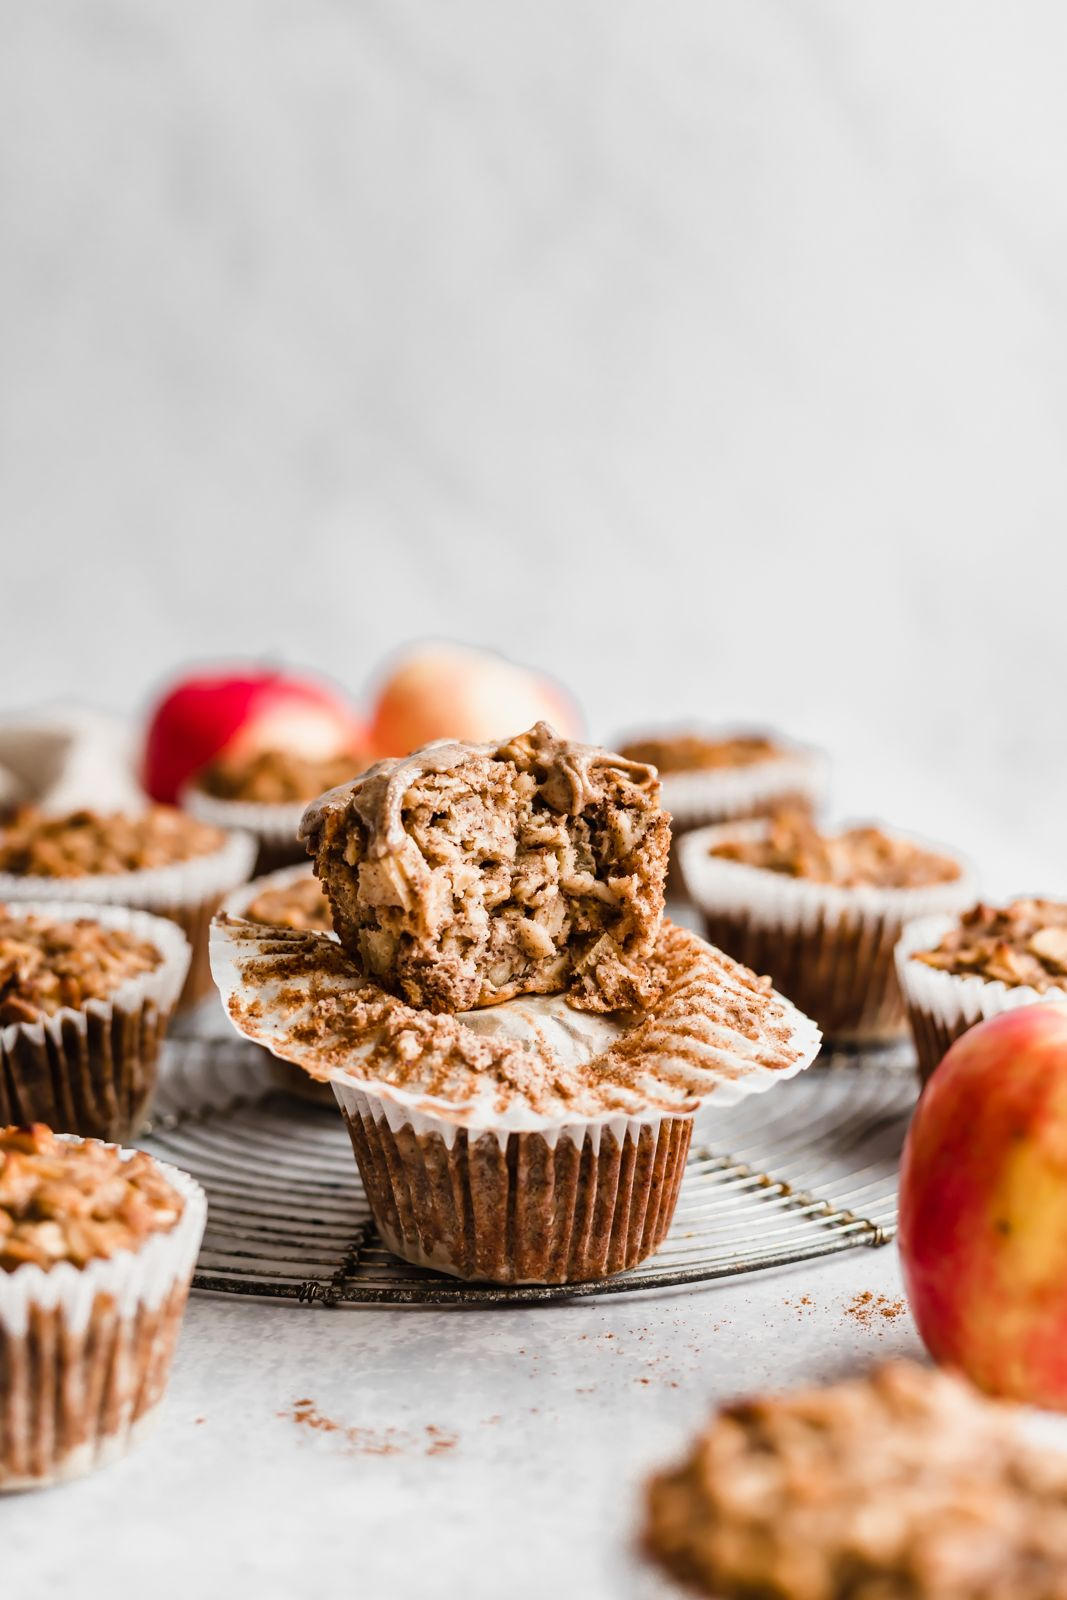 Easy apple cinnamon baked oatmeal cups made with applesauce, fresh apples, oats, maple syrup and almond butter for a boost of protein + flavor. Freezer-friendly, great for kids or meal prep! #freezerfriendly #bakedoatmeal #oatmeal #applerecipe #almondbutter #kidfriendly